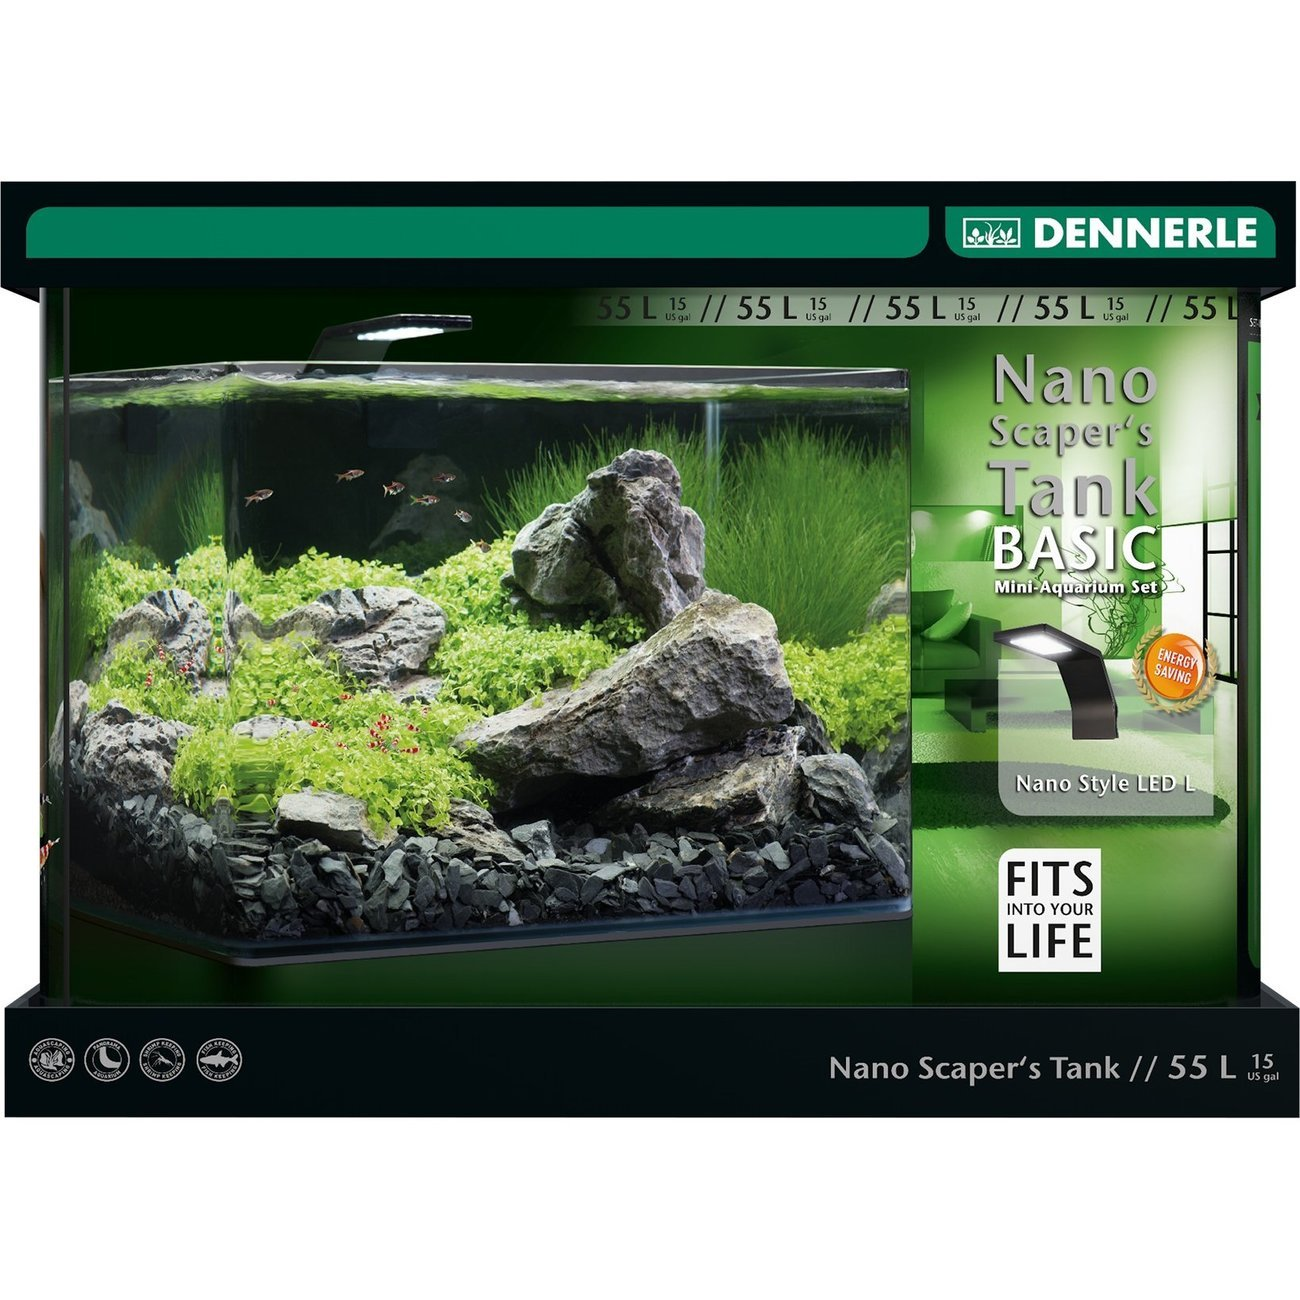 Dennerle Nano Scapers Tank Basic Style LED Aquarium